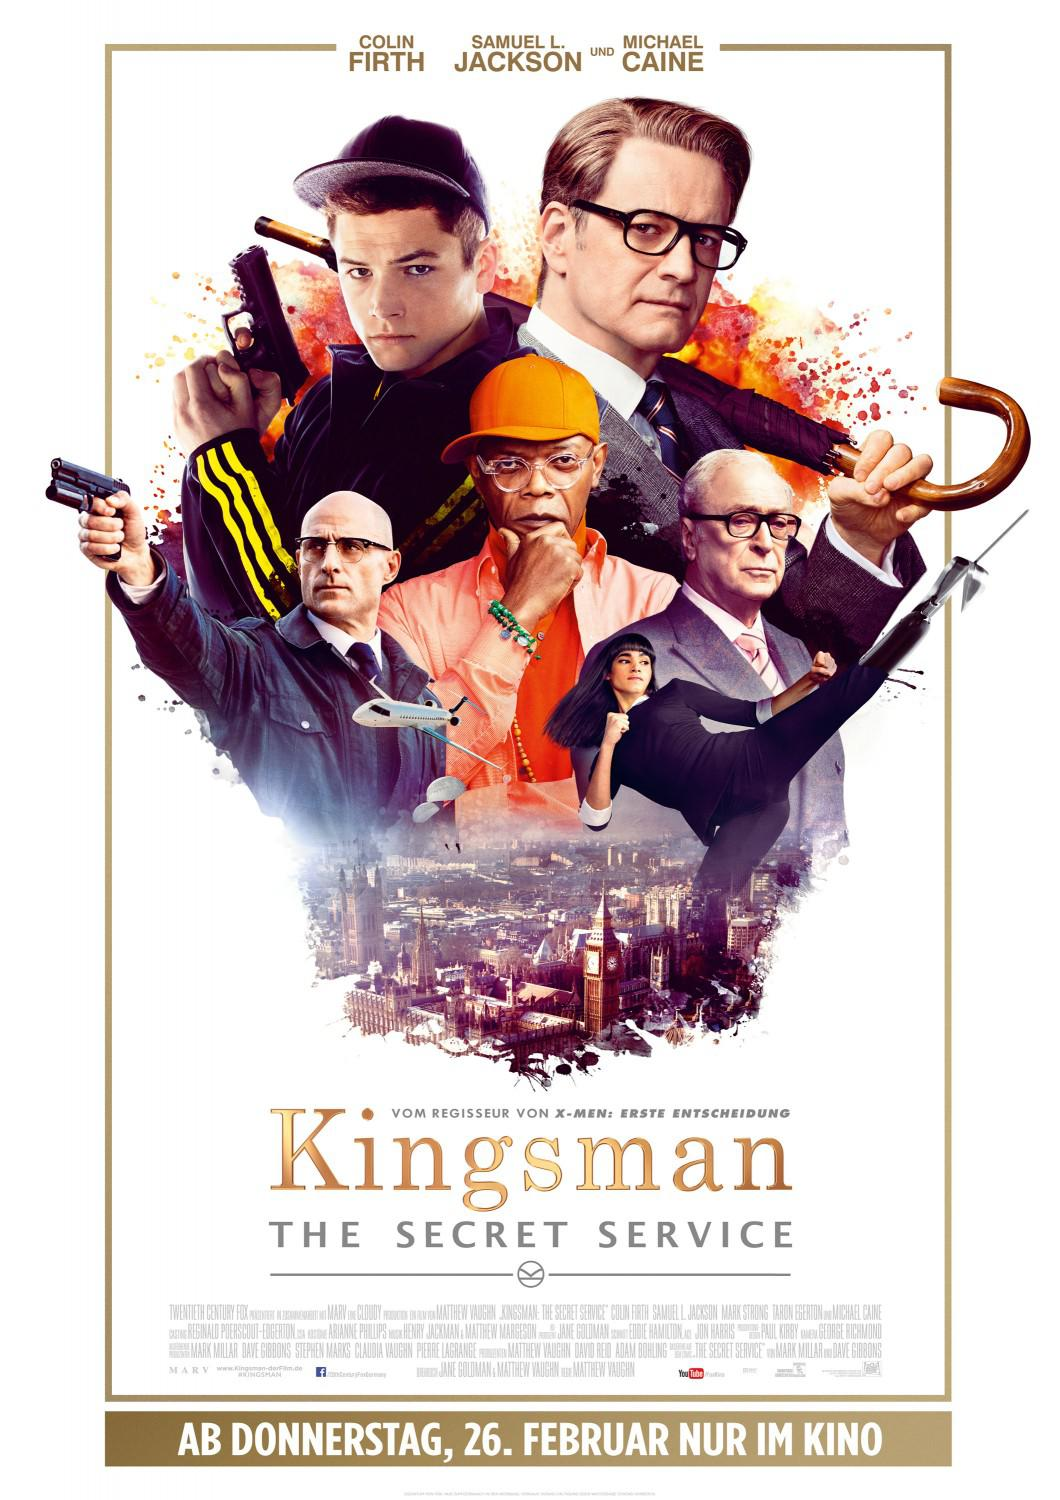 Kingsman 1 - the Secret Service - poster